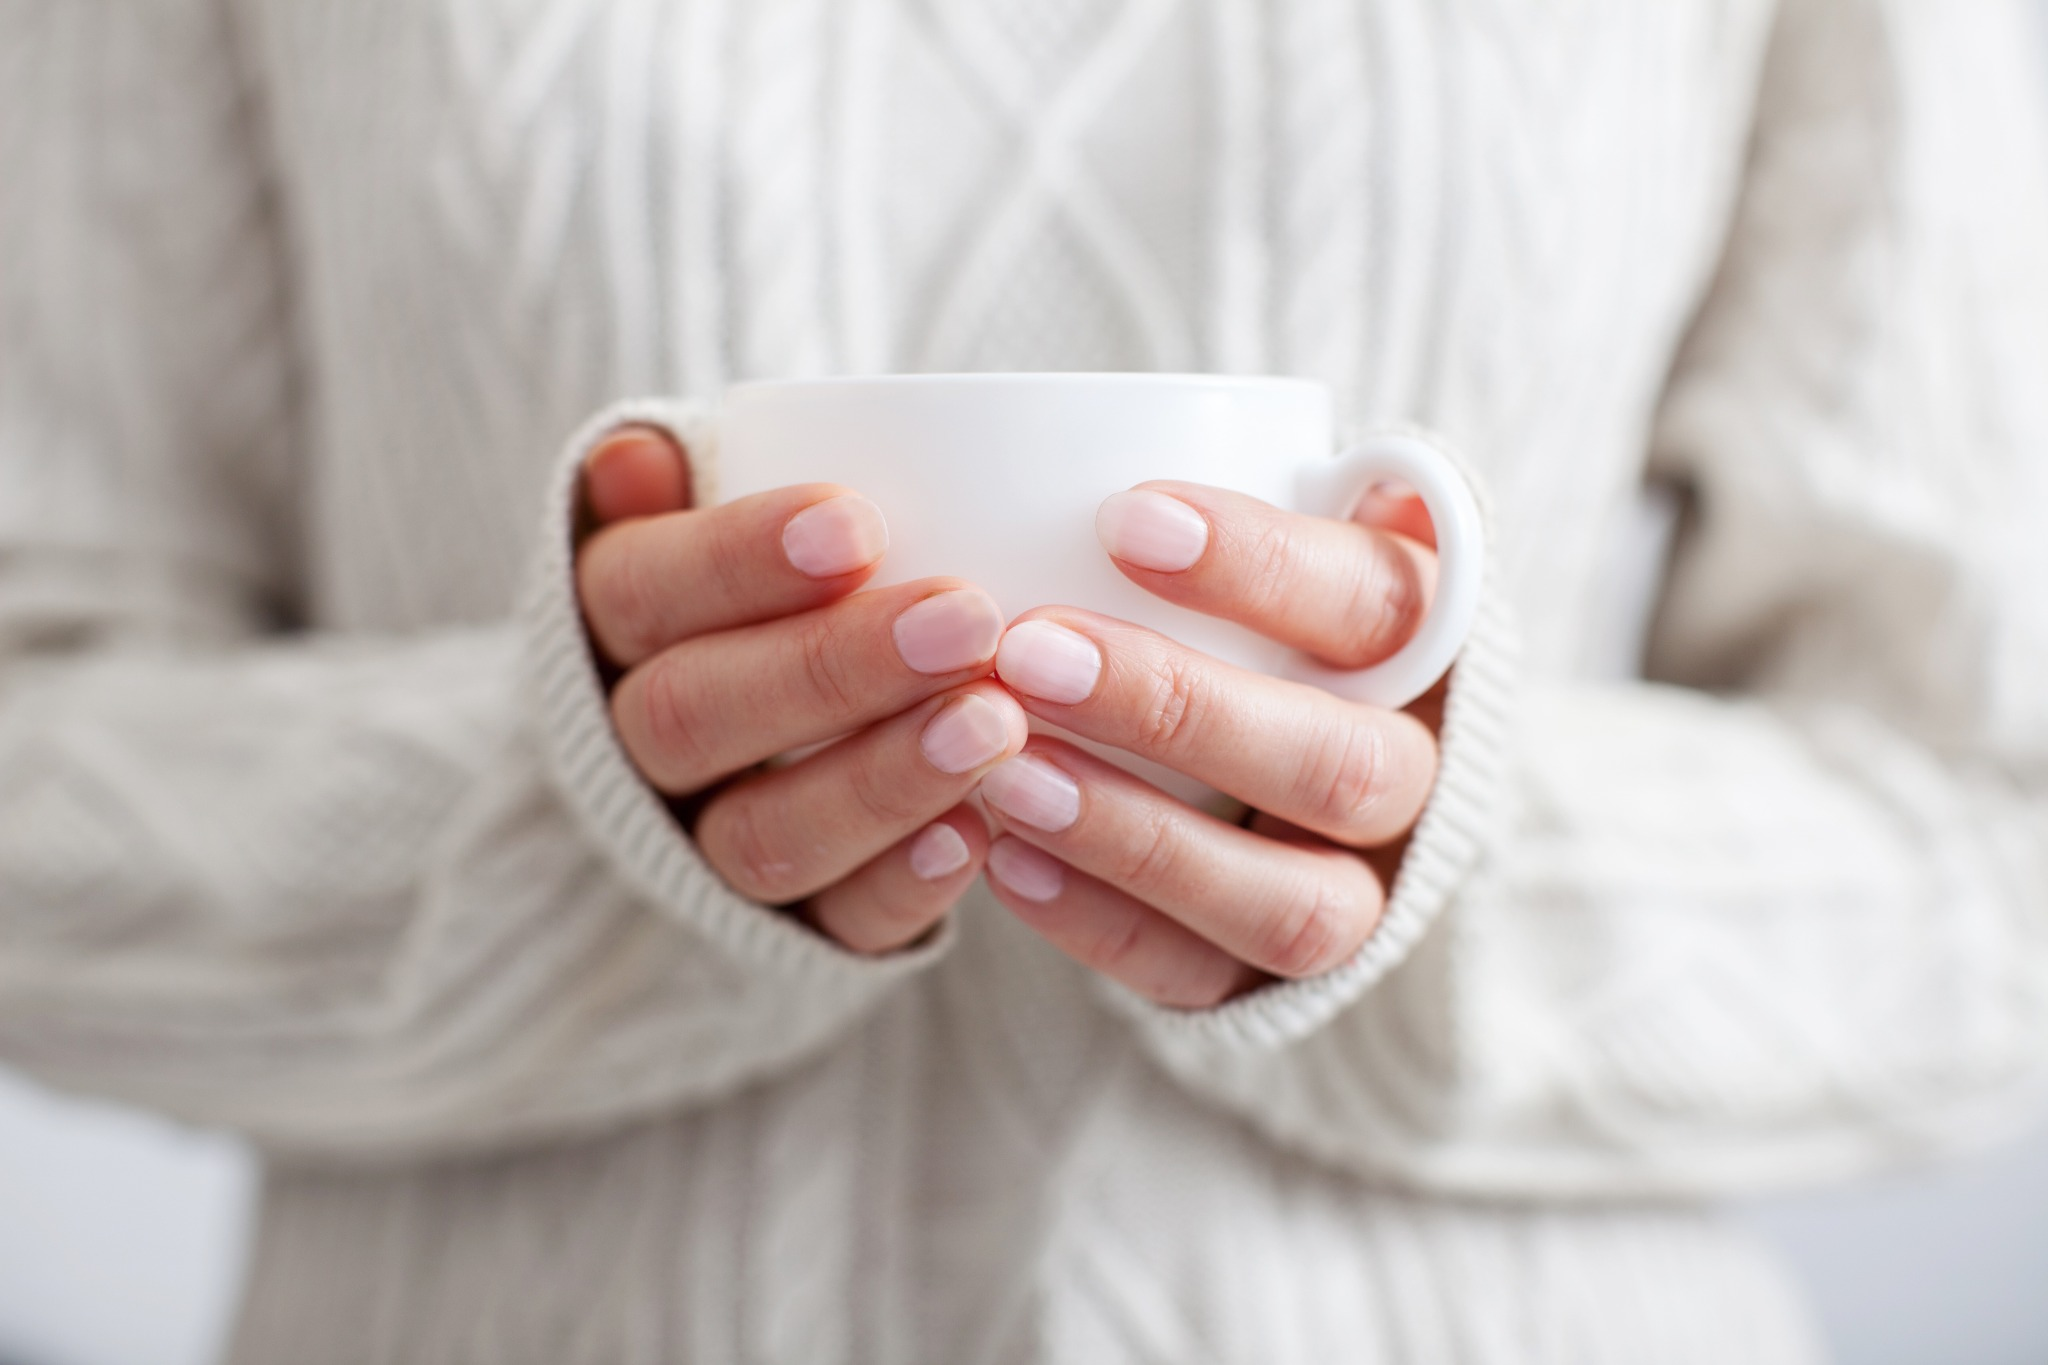 A woman in a sweater holding a white mug to warm her cold hands.